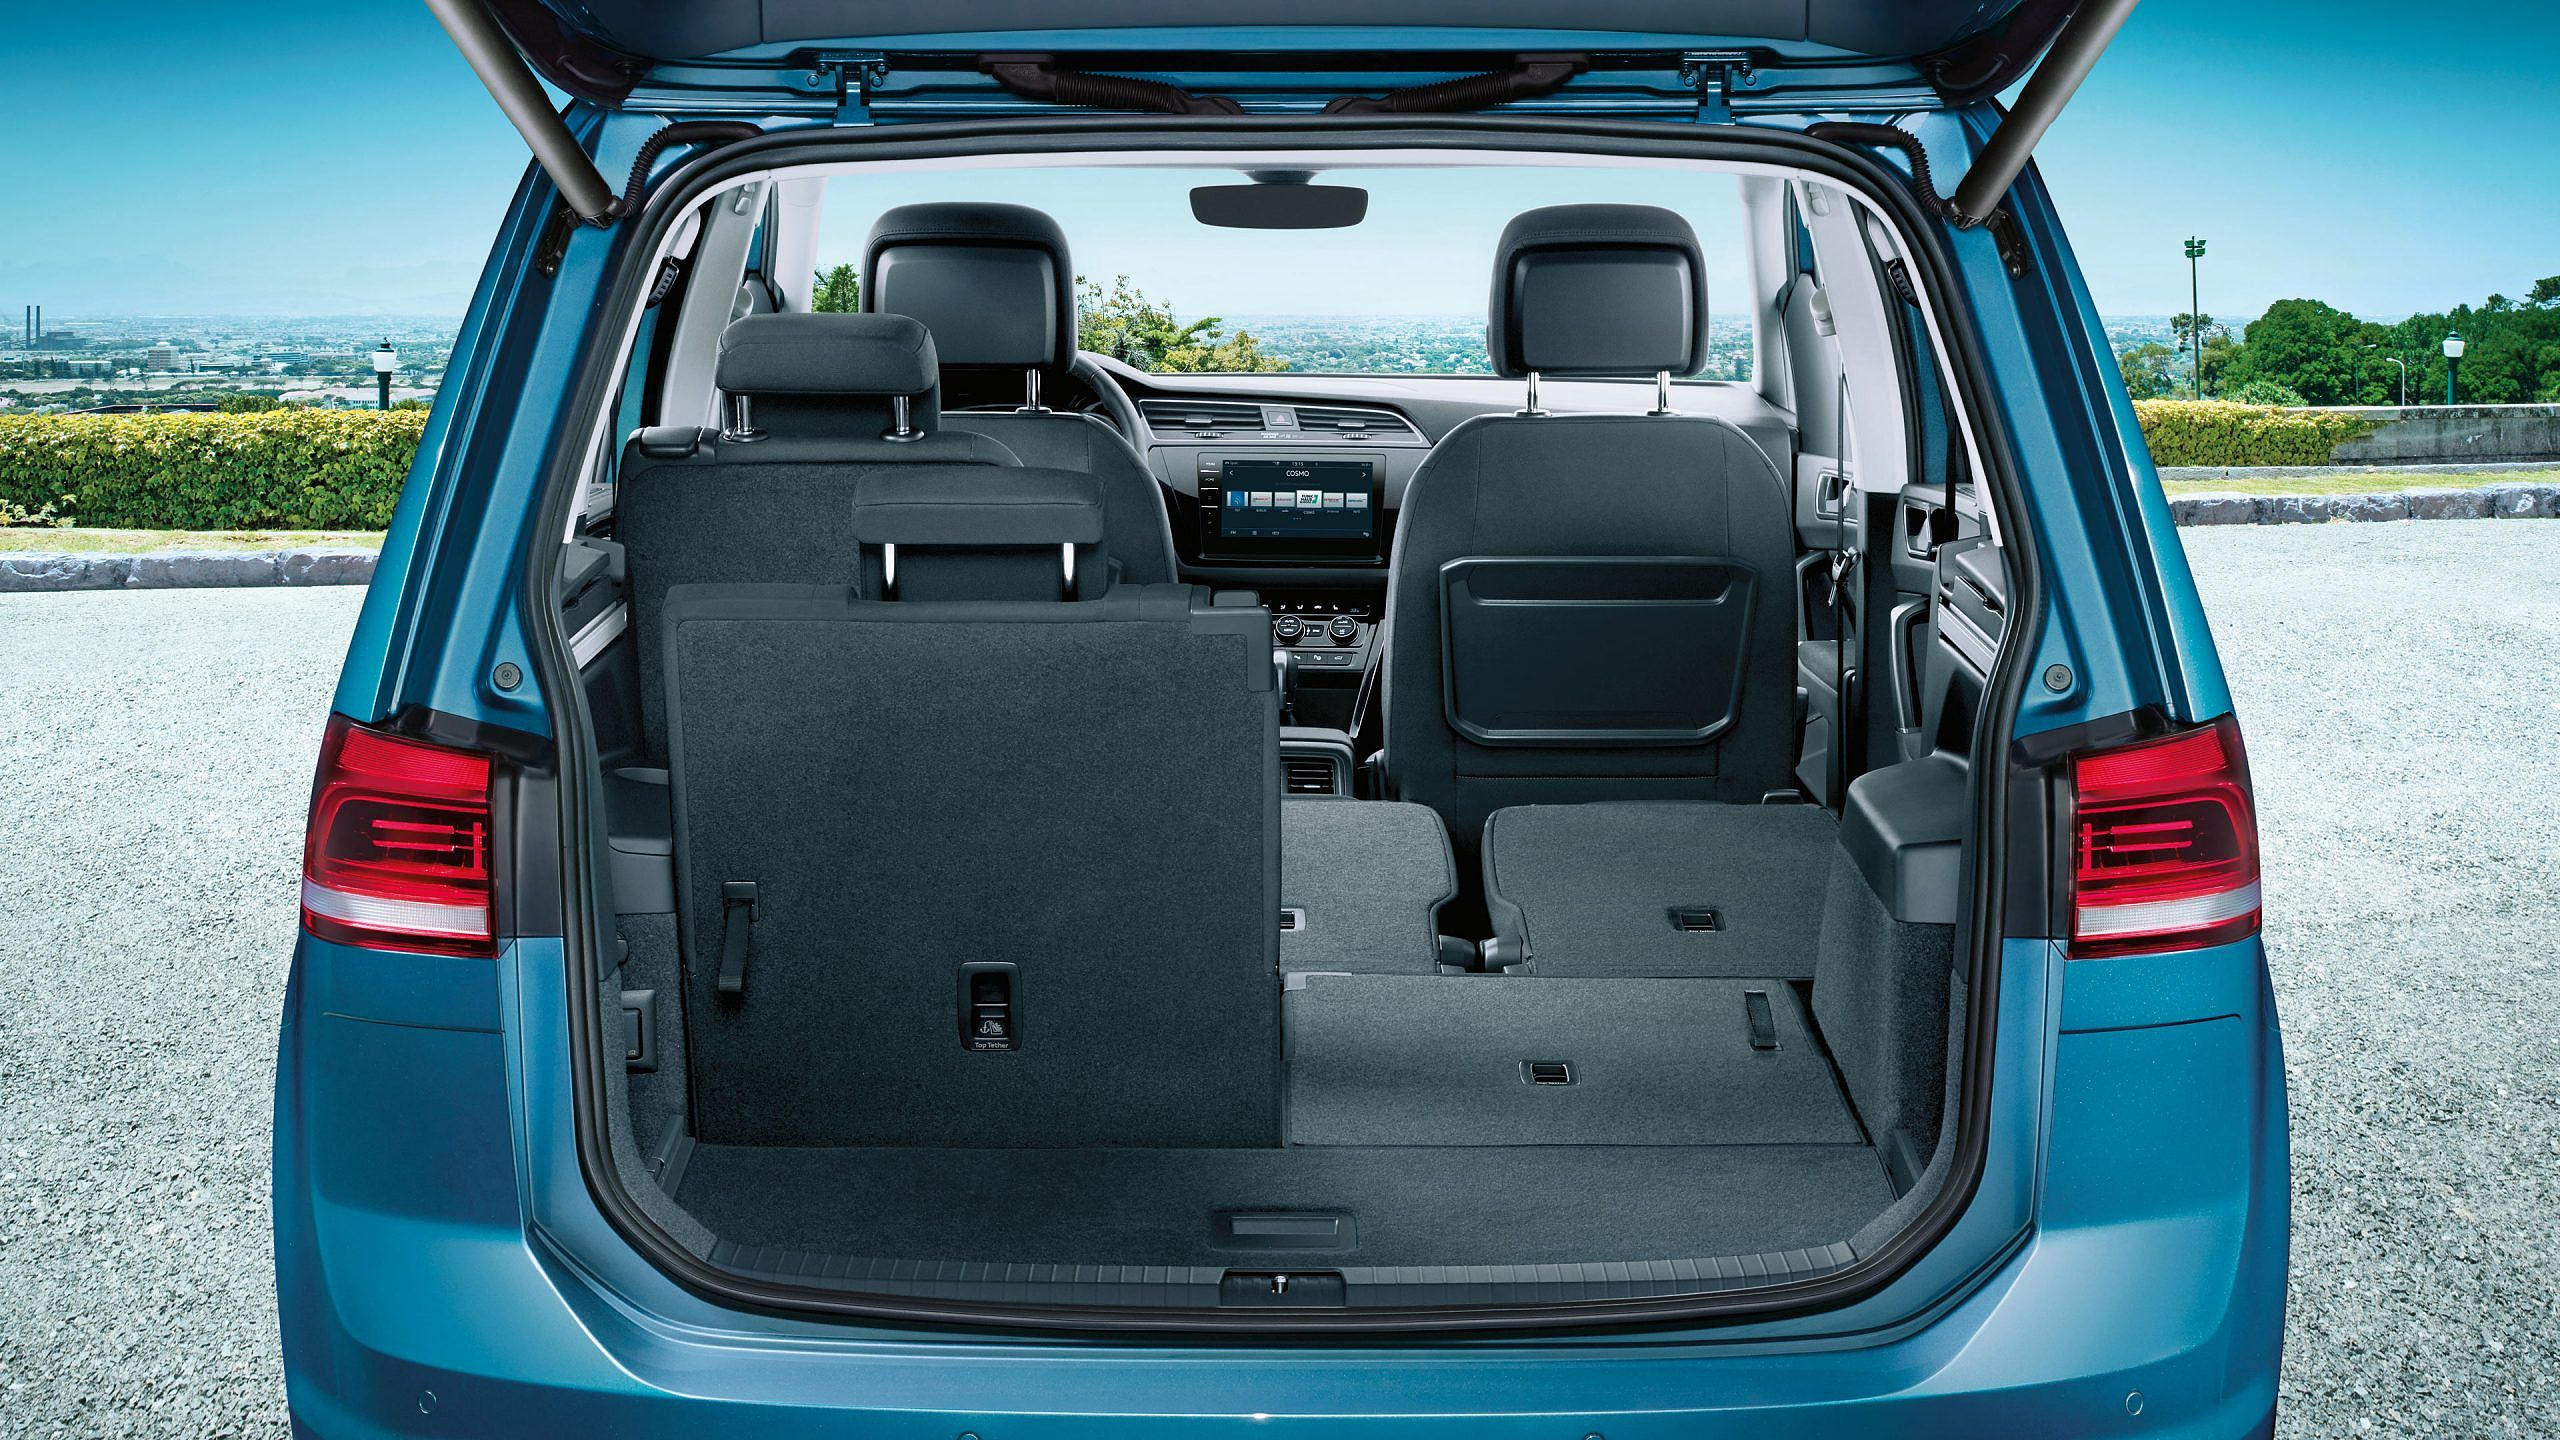 vw touran 2019 top neuwagen angebote. Black Bedroom Furniture Sets. Home Design Ideas